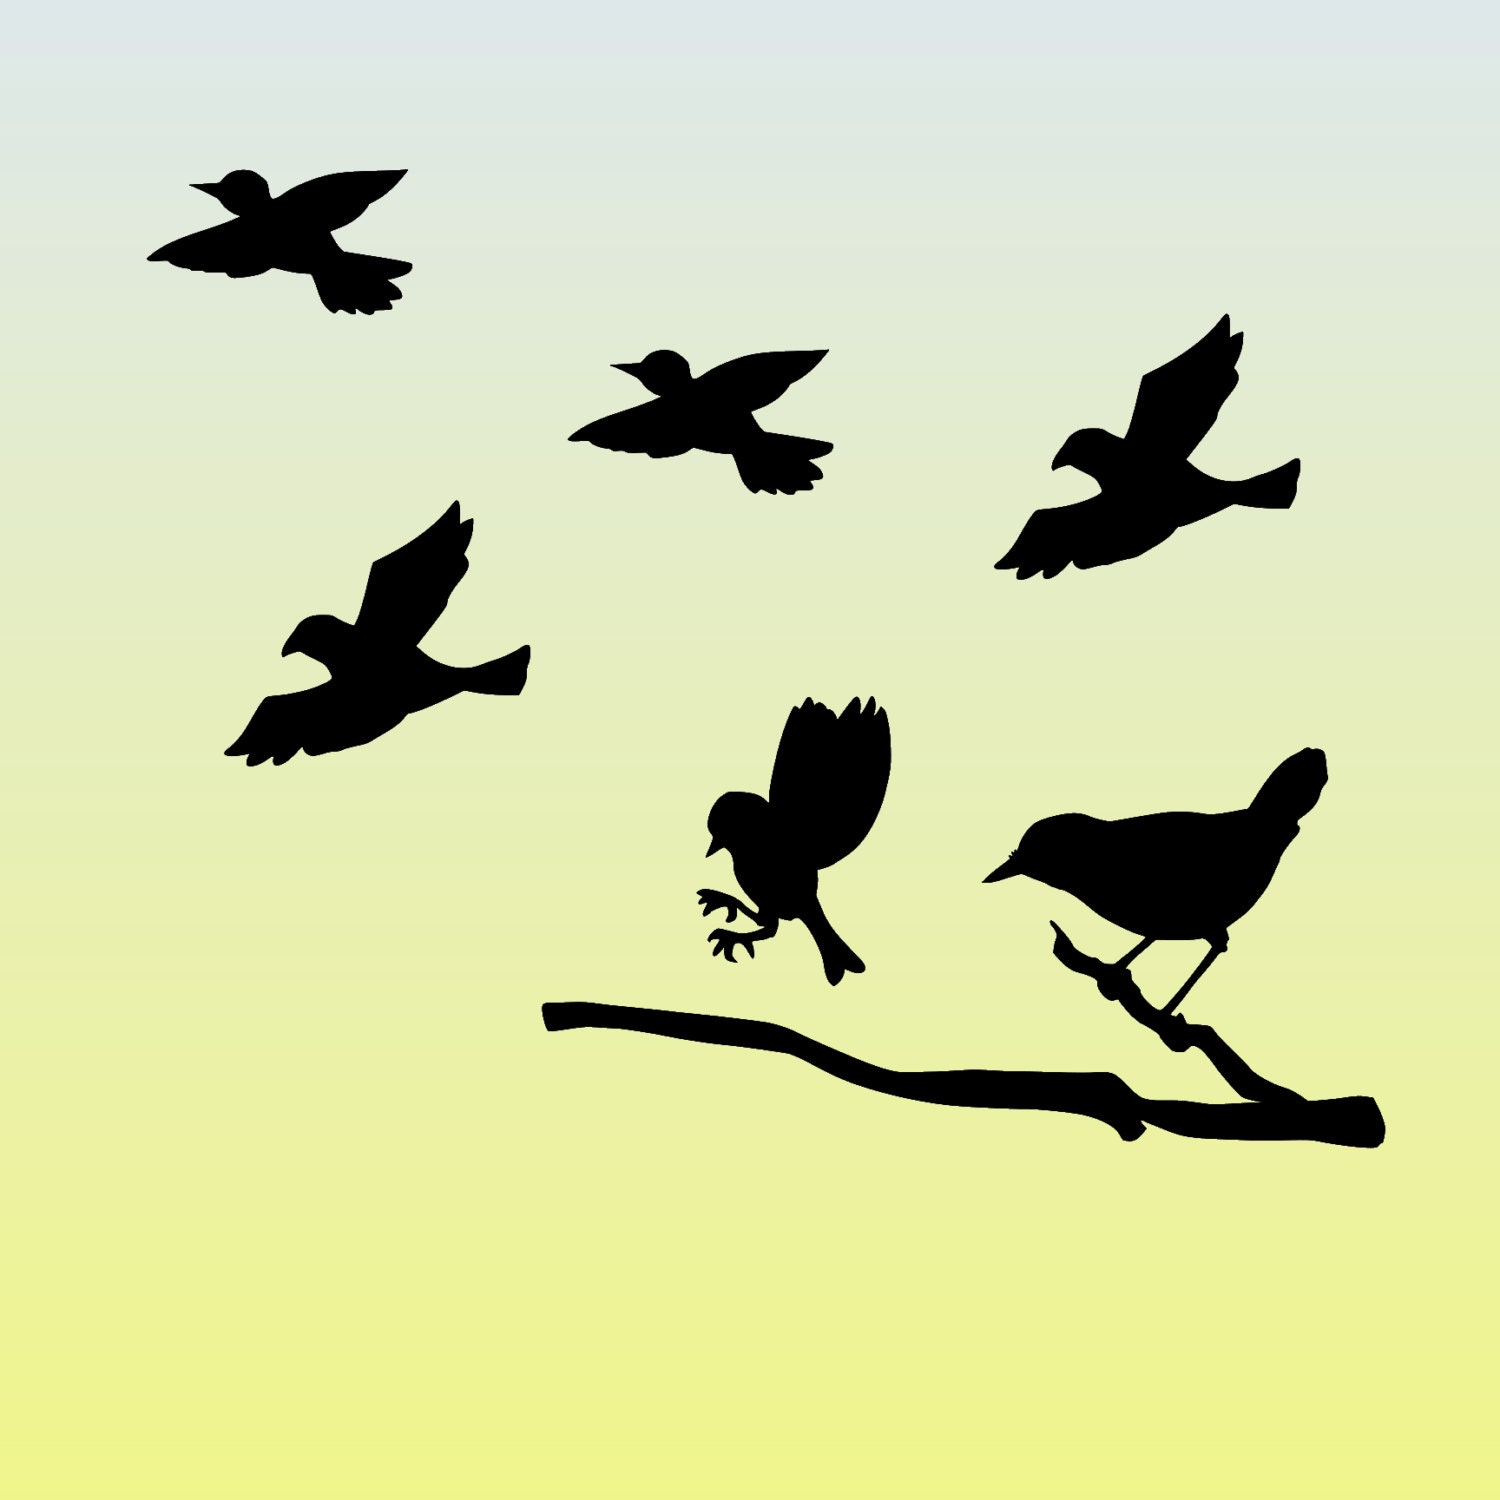 Flying Bird Silhouette Vinyl DIY Sign Decal Set Wall Graphic   Etsy